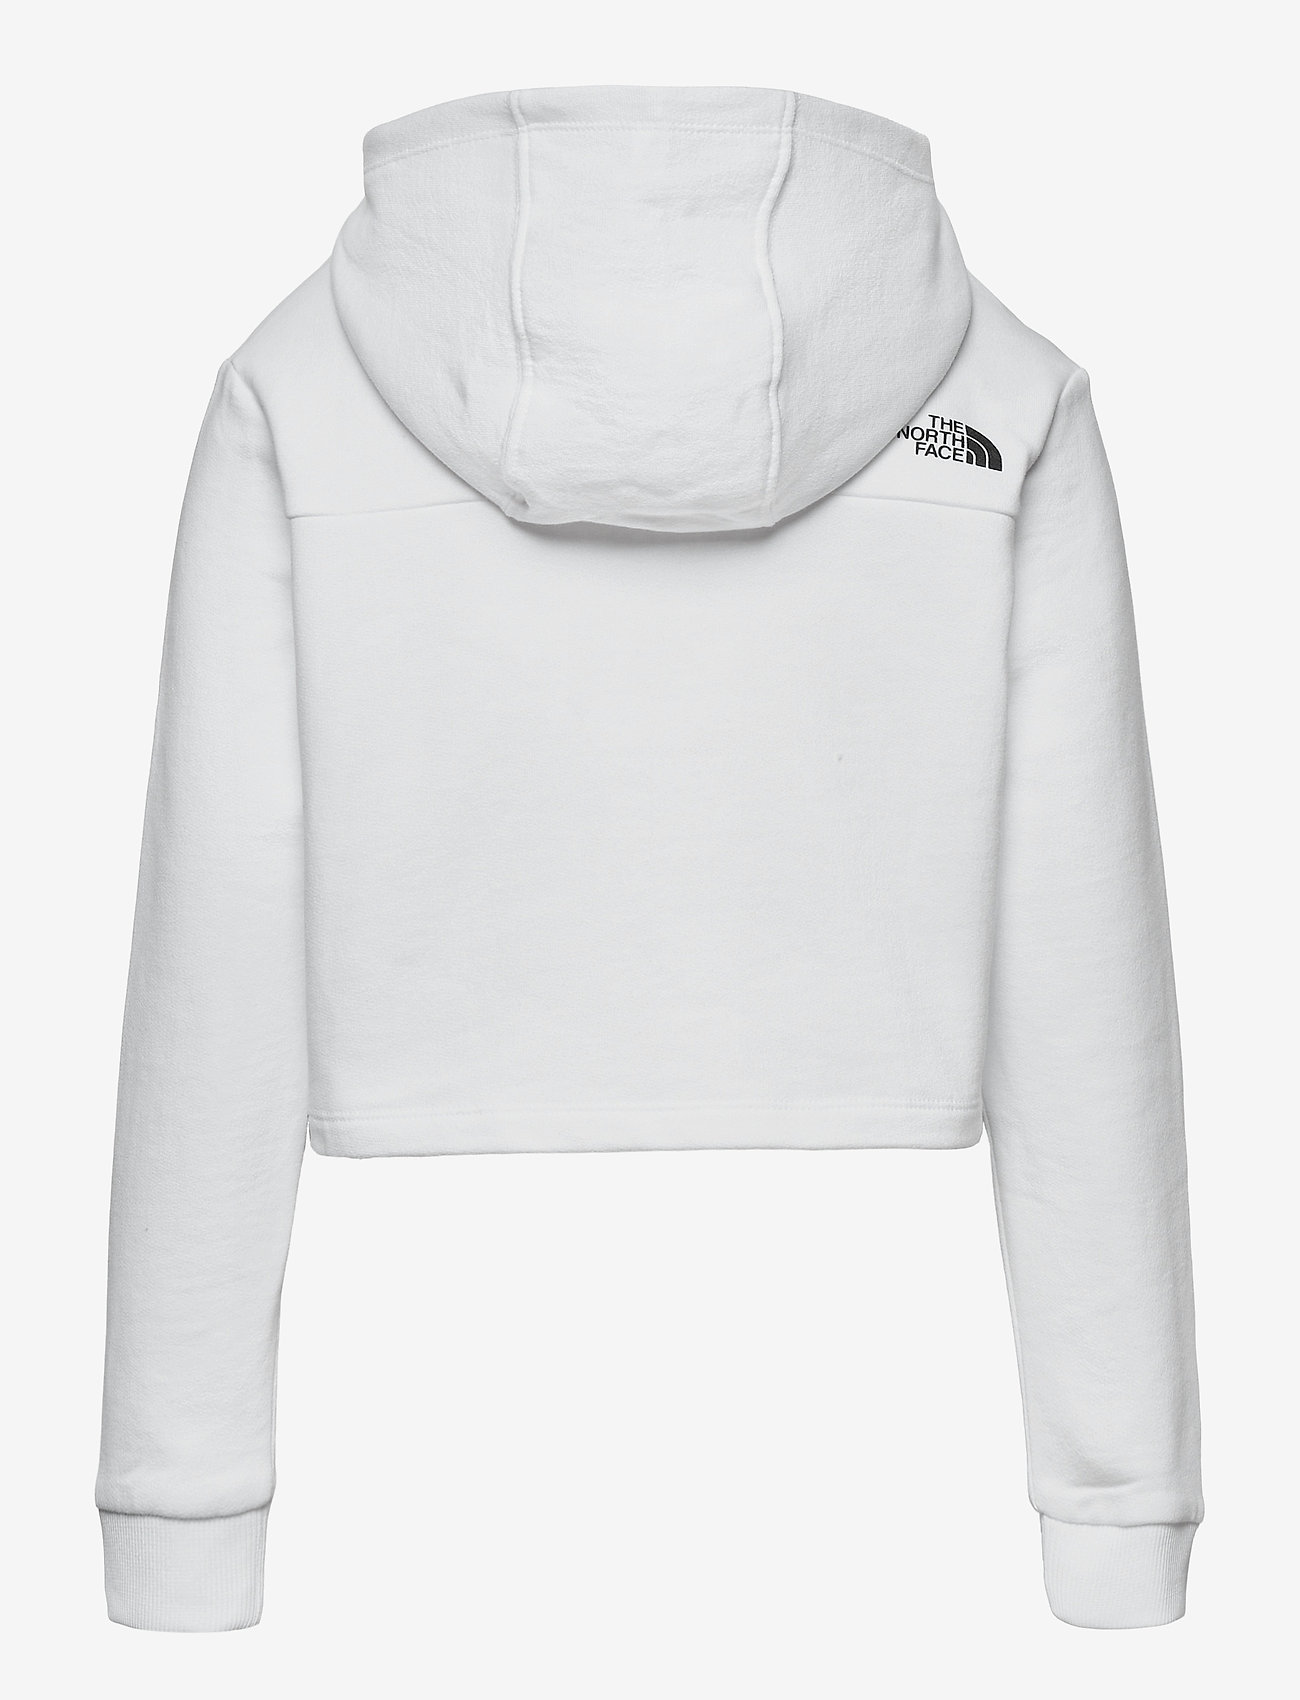 The North Face - G DREW PEAK CROPPED P/O HOODIE - hoodies - tnf white - 1